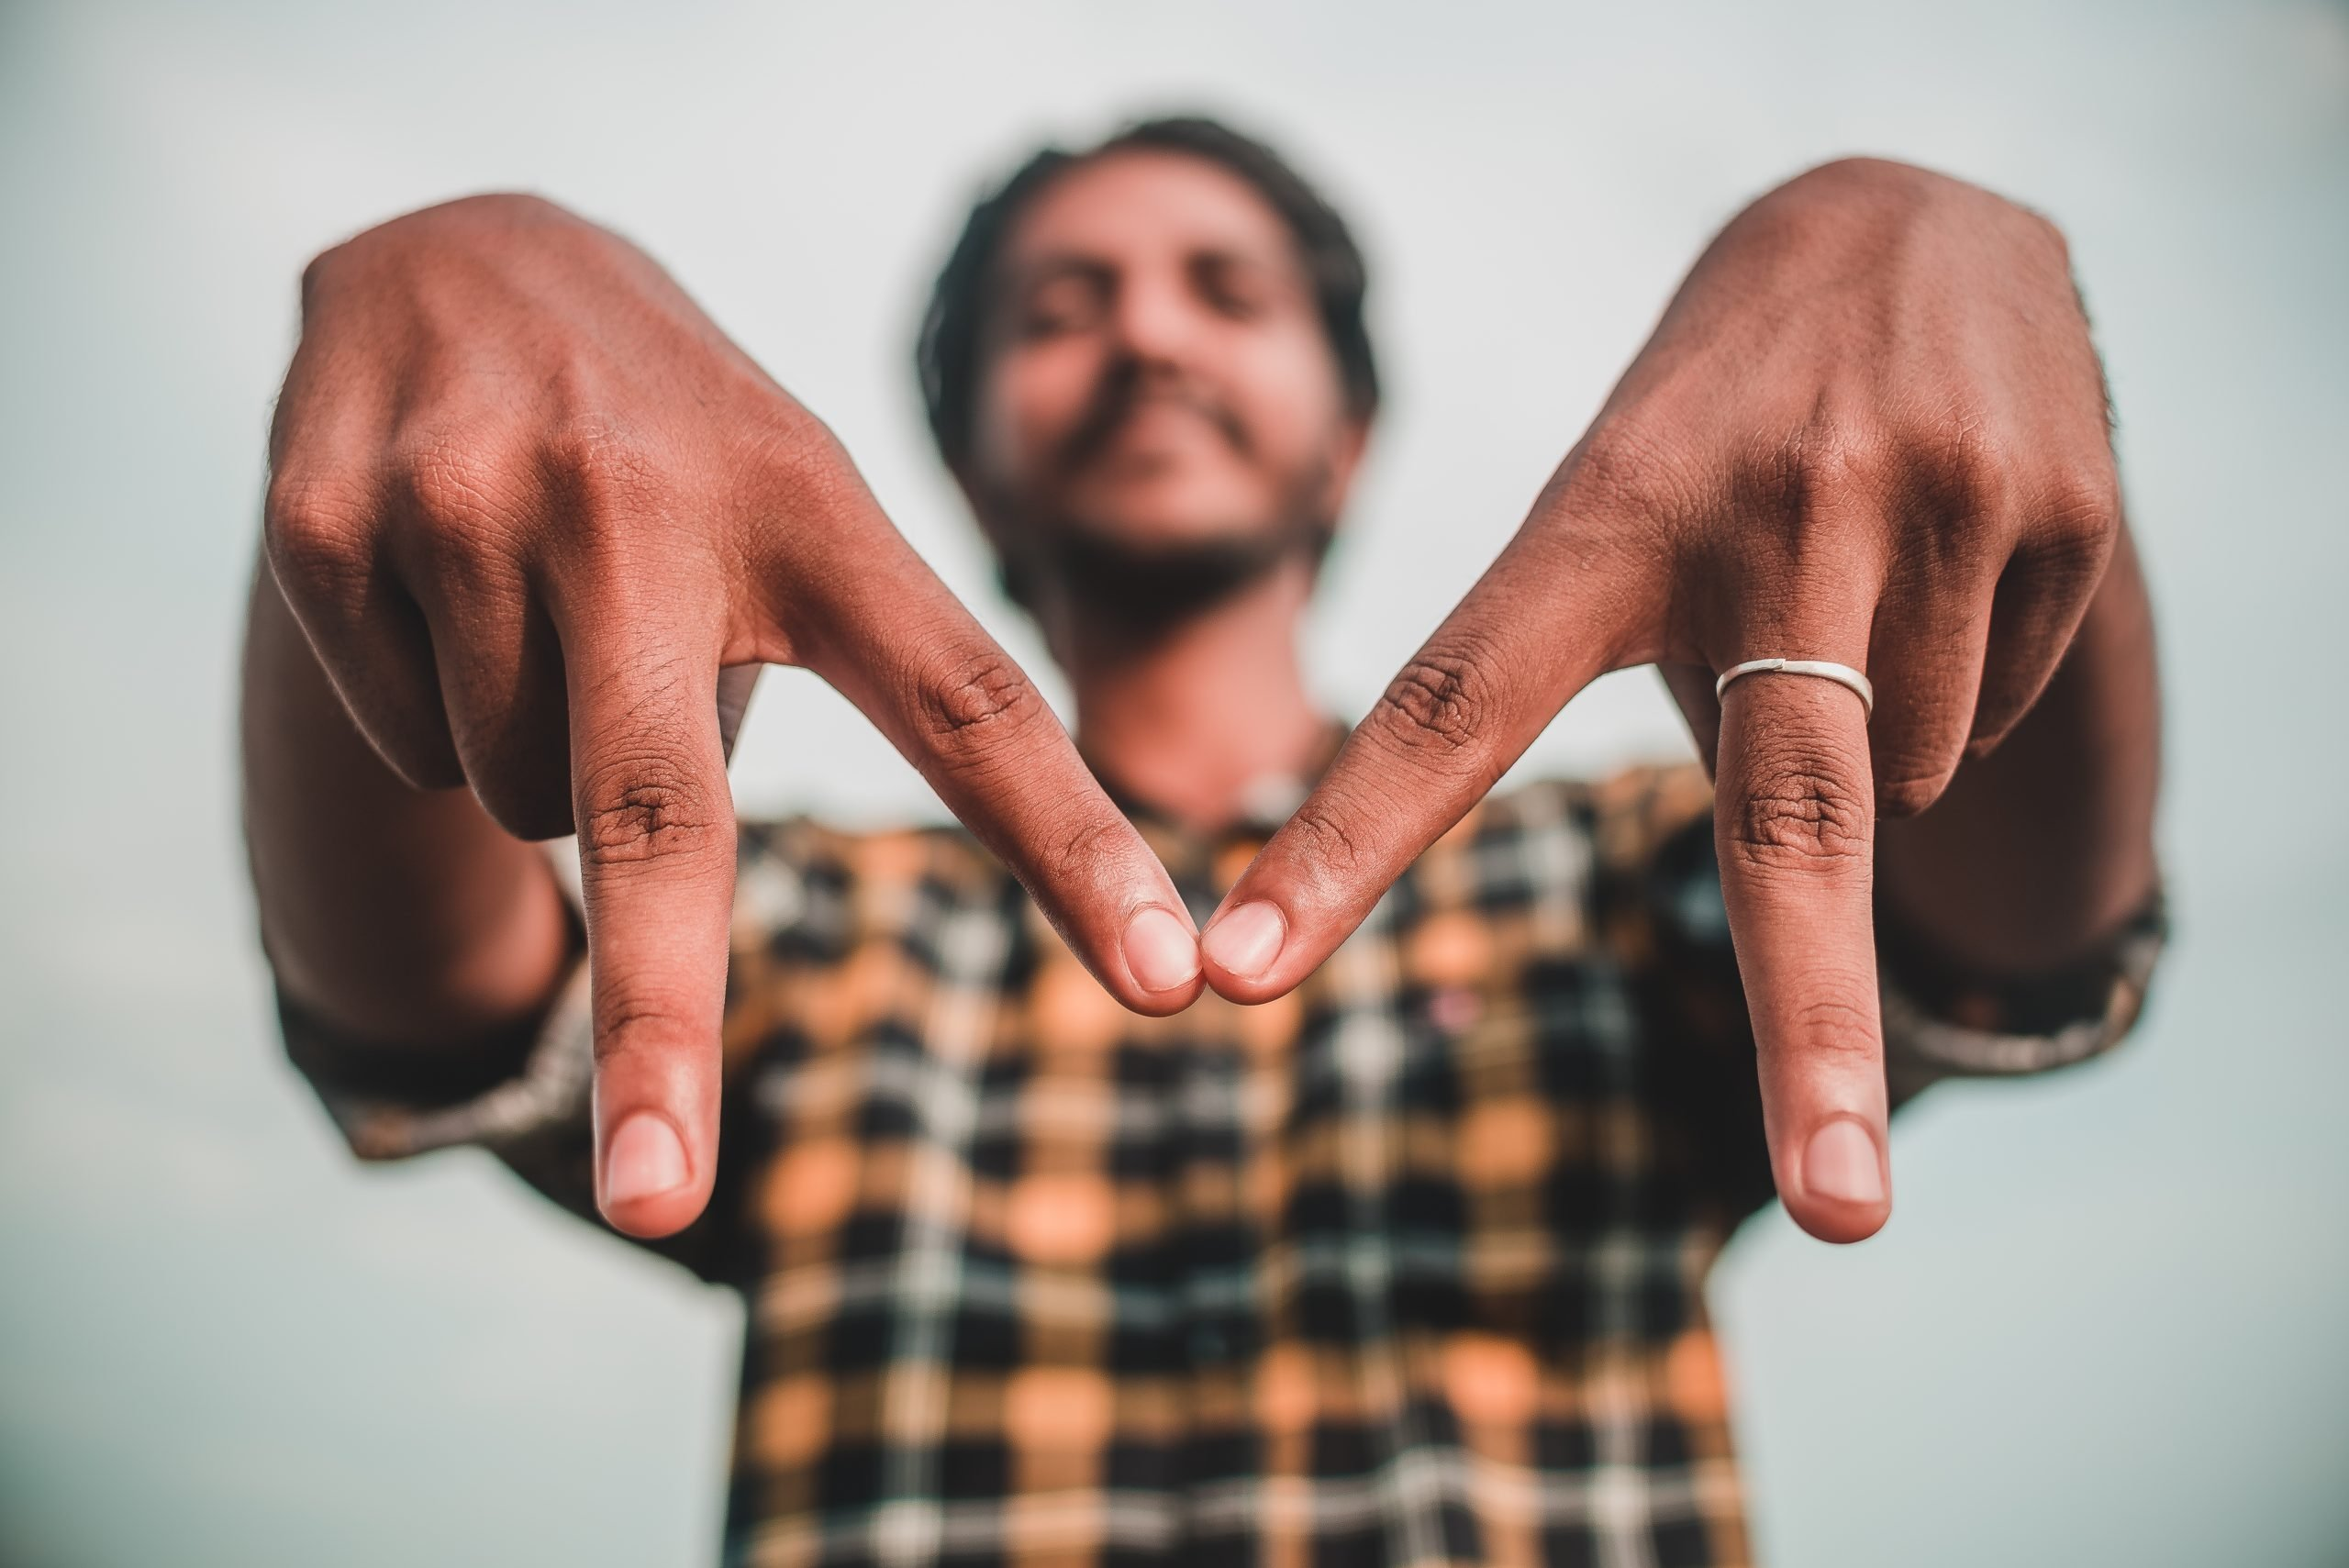 man making M with fingers